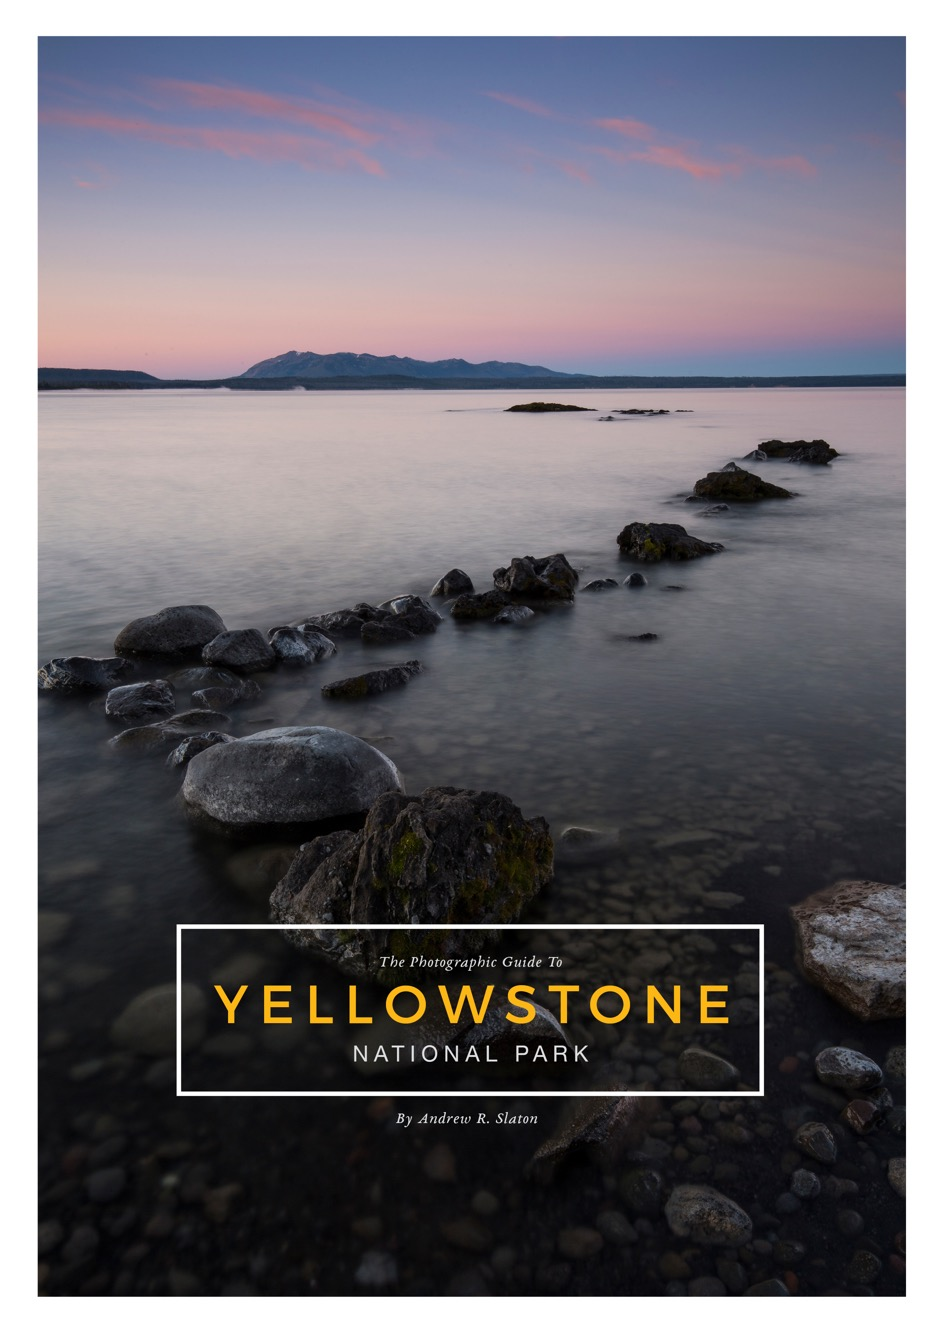 The Photographic Guide To Yellowstone National Park - COVER.jpg